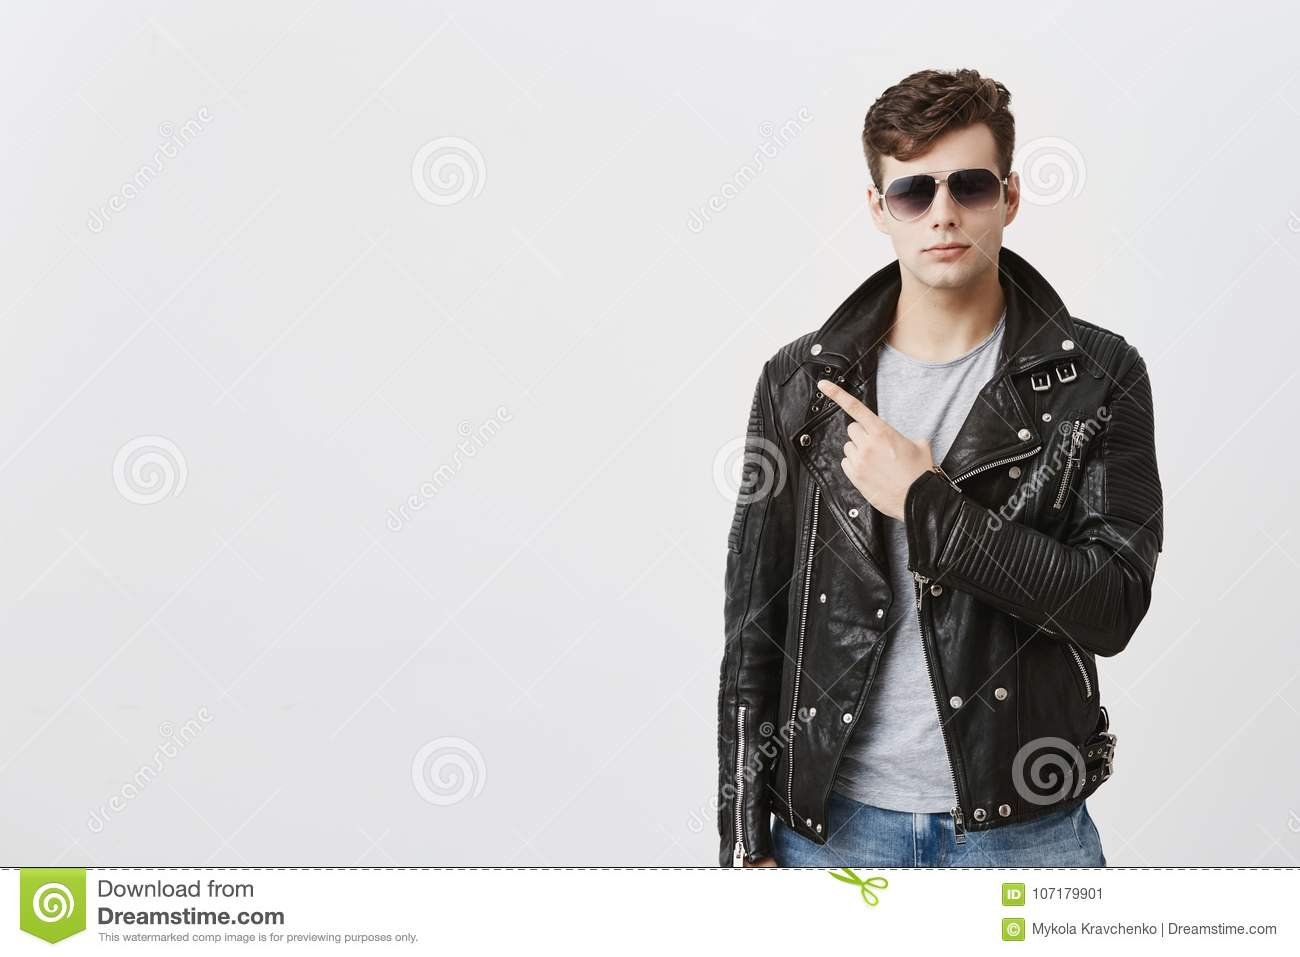 ea7b746f153 Confident good-looking guy dressed in black leather jacket with sunglasses  on